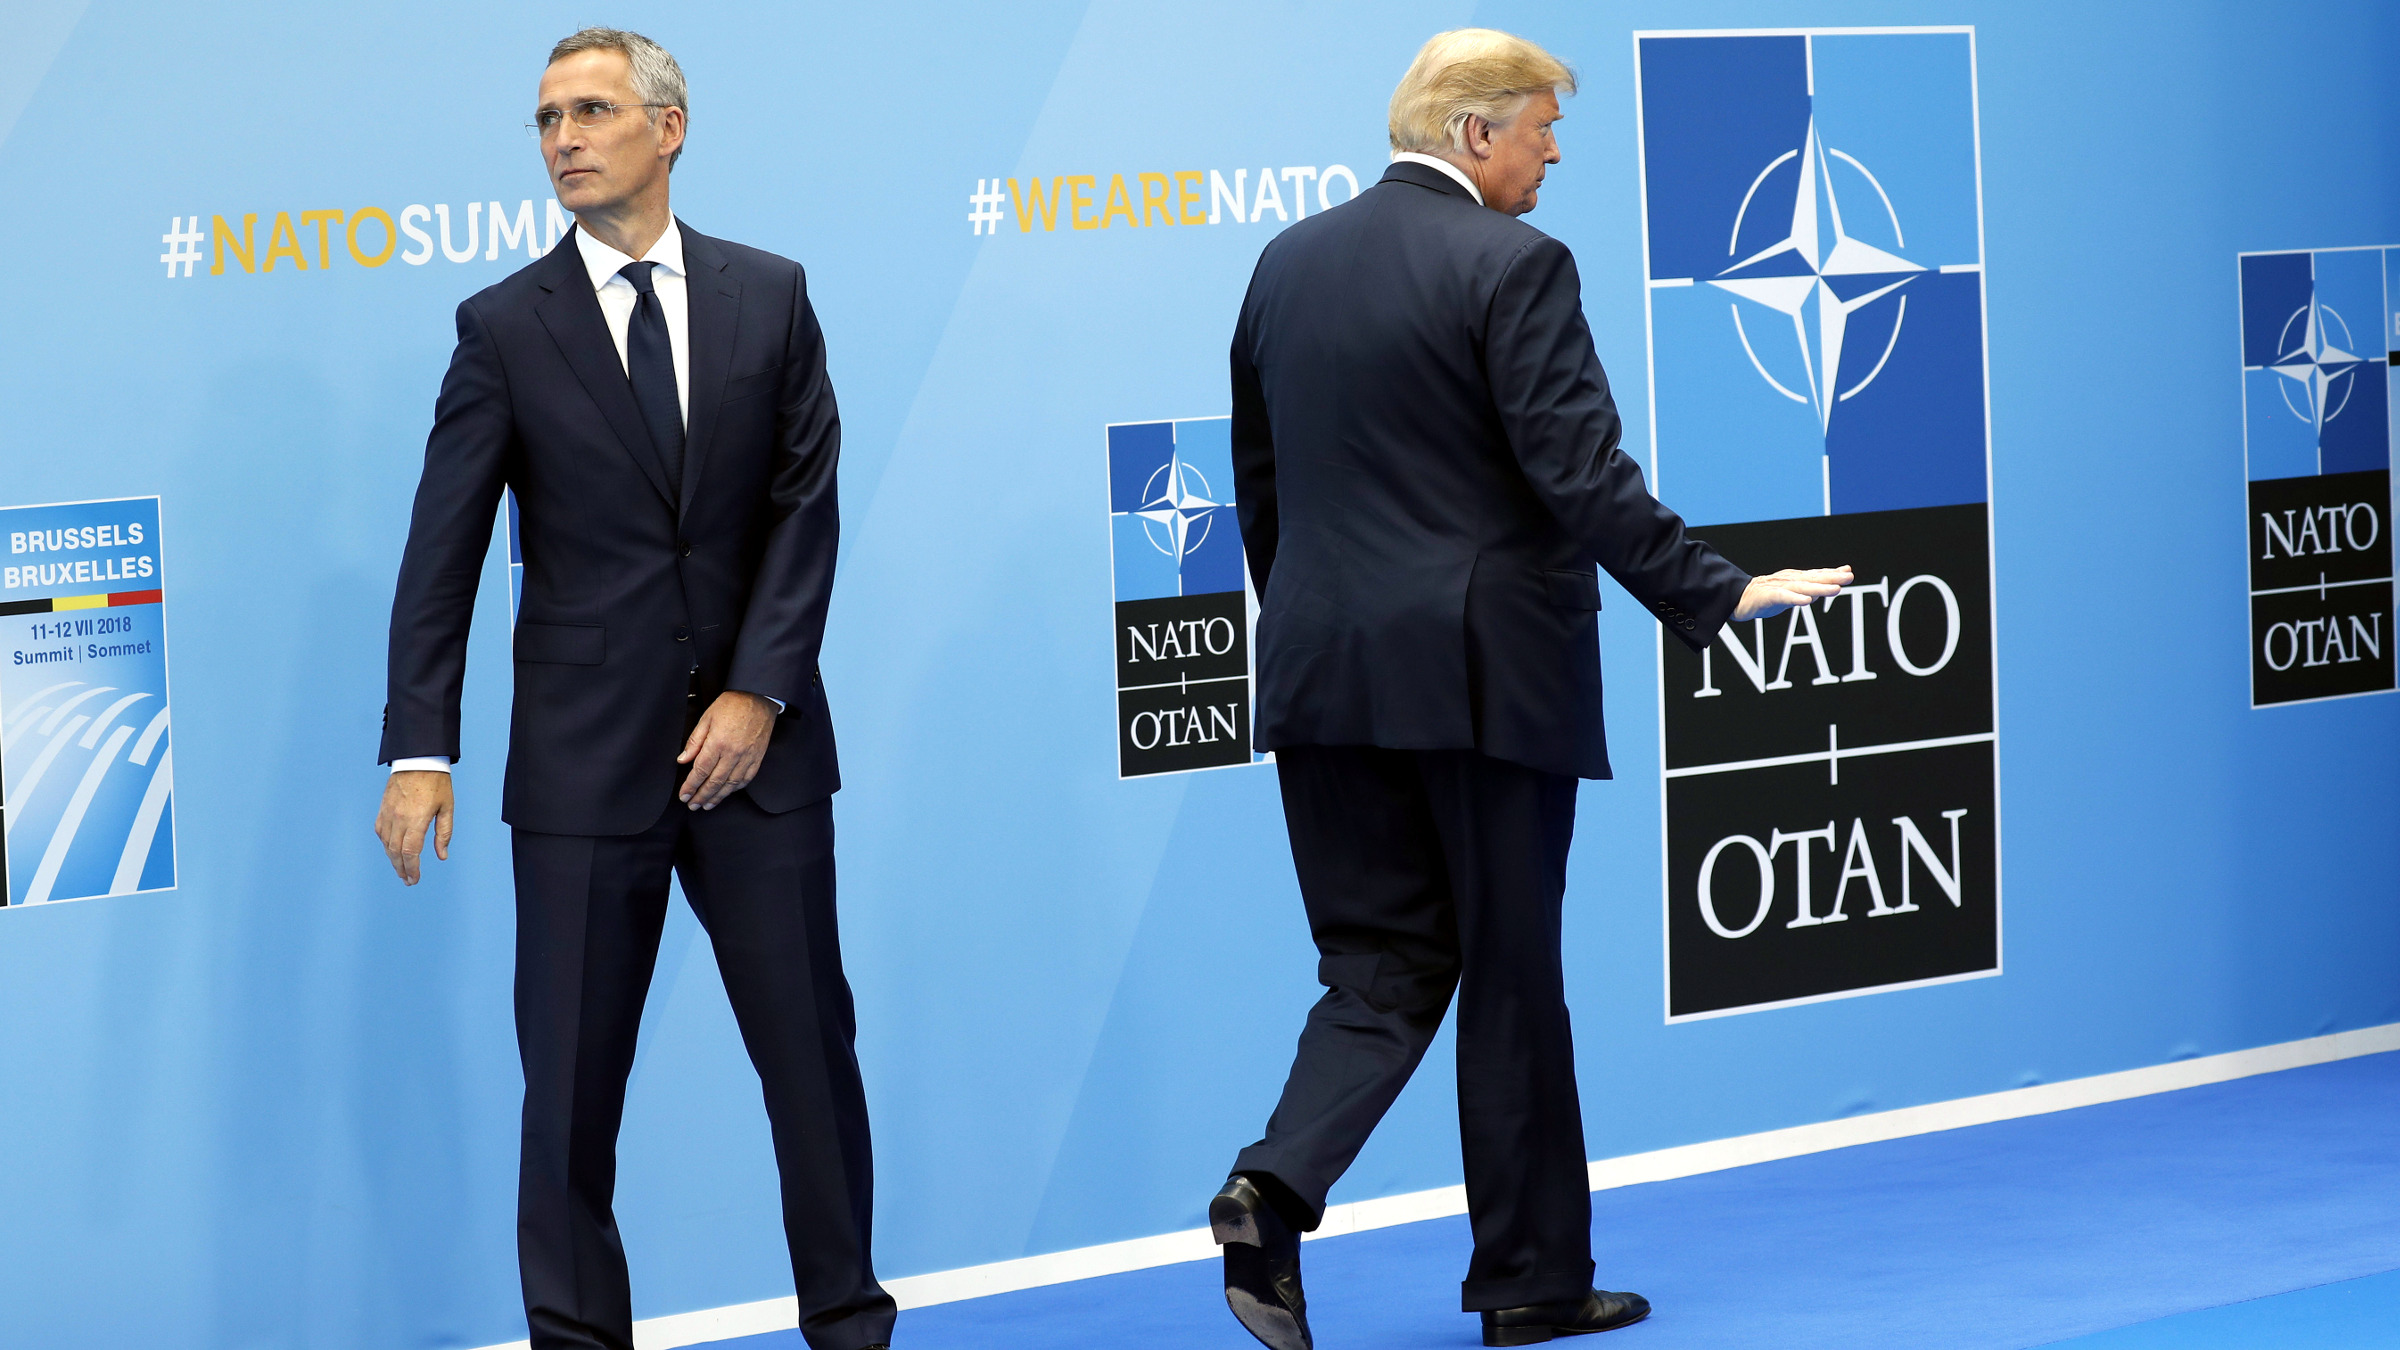 President Donald Trump gestures as he walks away after being greeted by NATO Secretary General Jens Stoltenberg, left, before a summit of heads of state and government at NATO headquarters in Brussels on Wednesday, July 11, 2018. NATO leaders gather in Brussels for a two-day summit to discuss Russia, Iraq and their mission in Afghanistan.